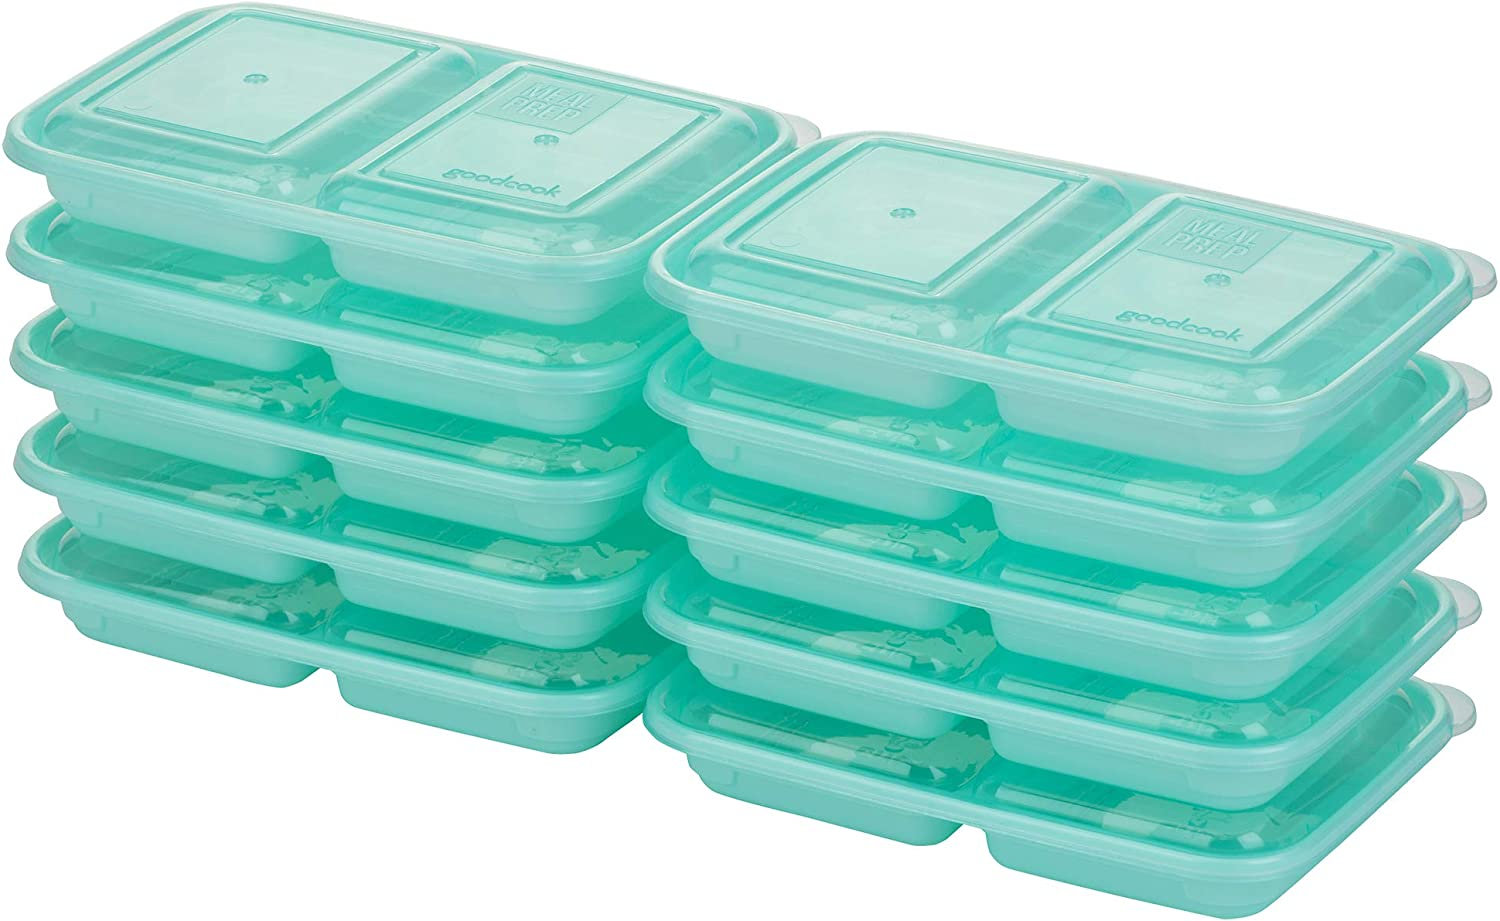 Good Cook 10786 Meal Prep, 2 Snack Compartments BPA Free, Microwavable/Dishwasher/Freezer Safe, Blue